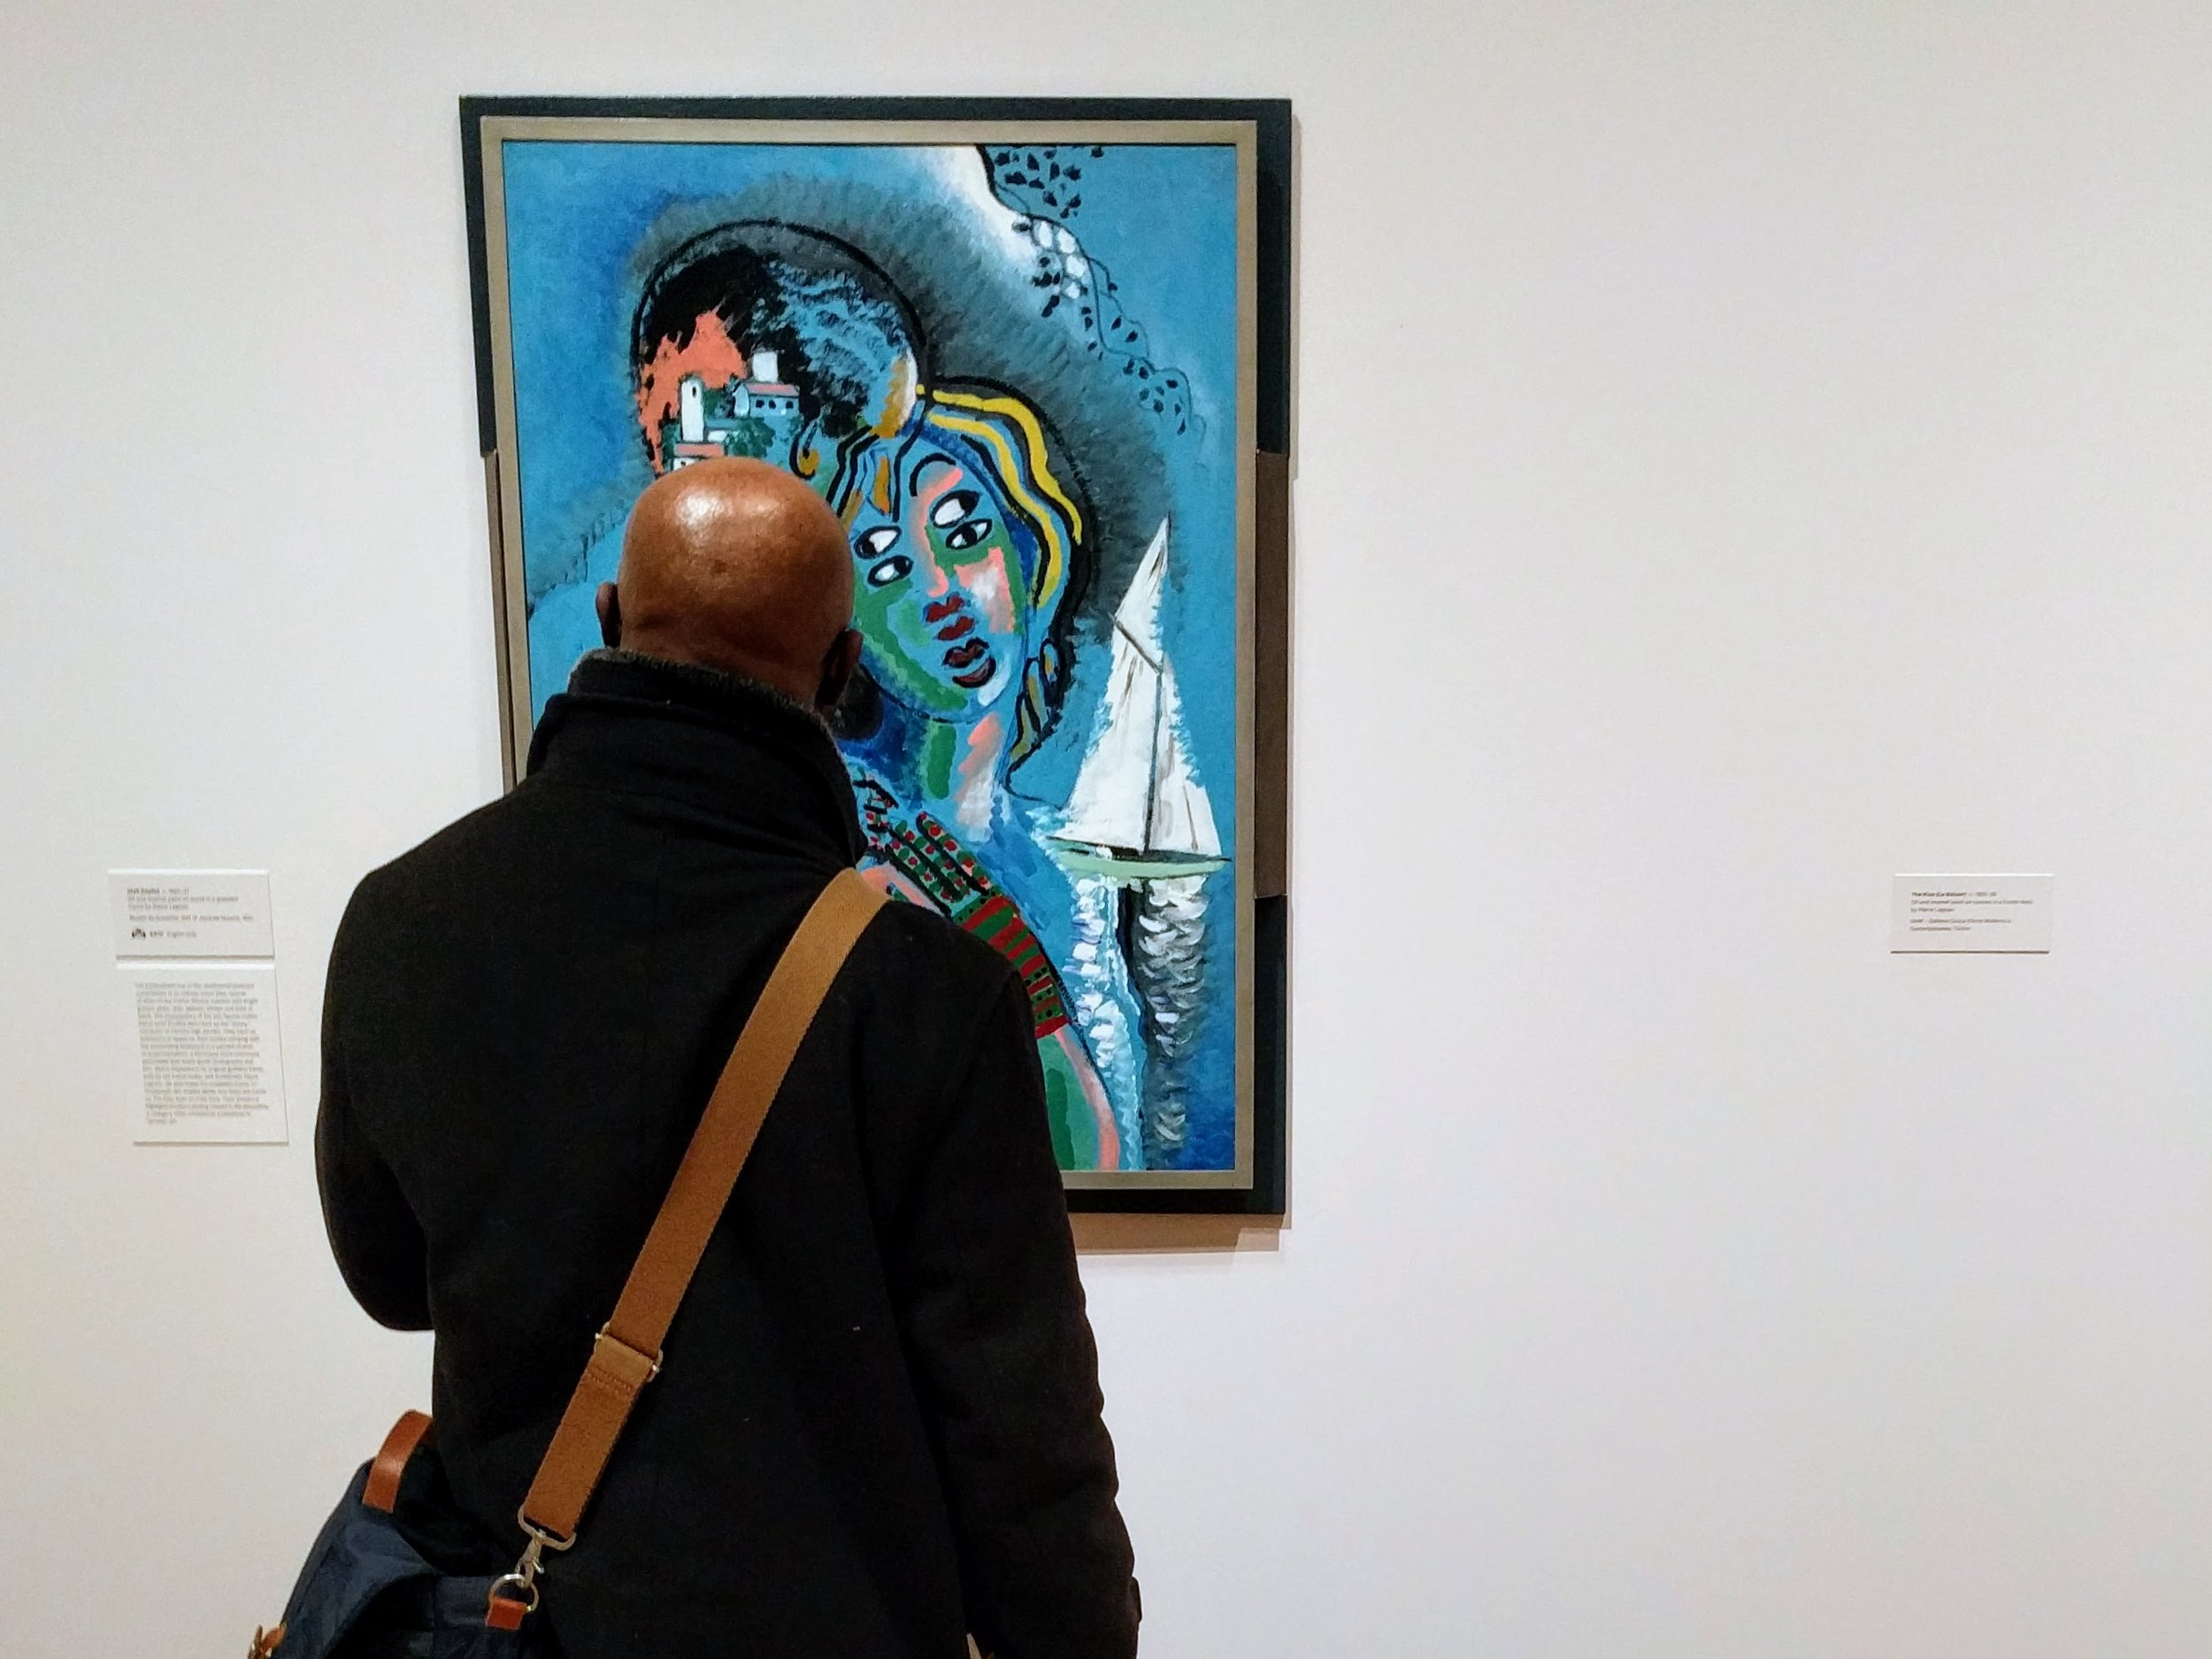 IDSVA student George Orwel with Picabia's  Idyll , 1925-27, New York Residency, 2017. Photo by Jonathan Morgan